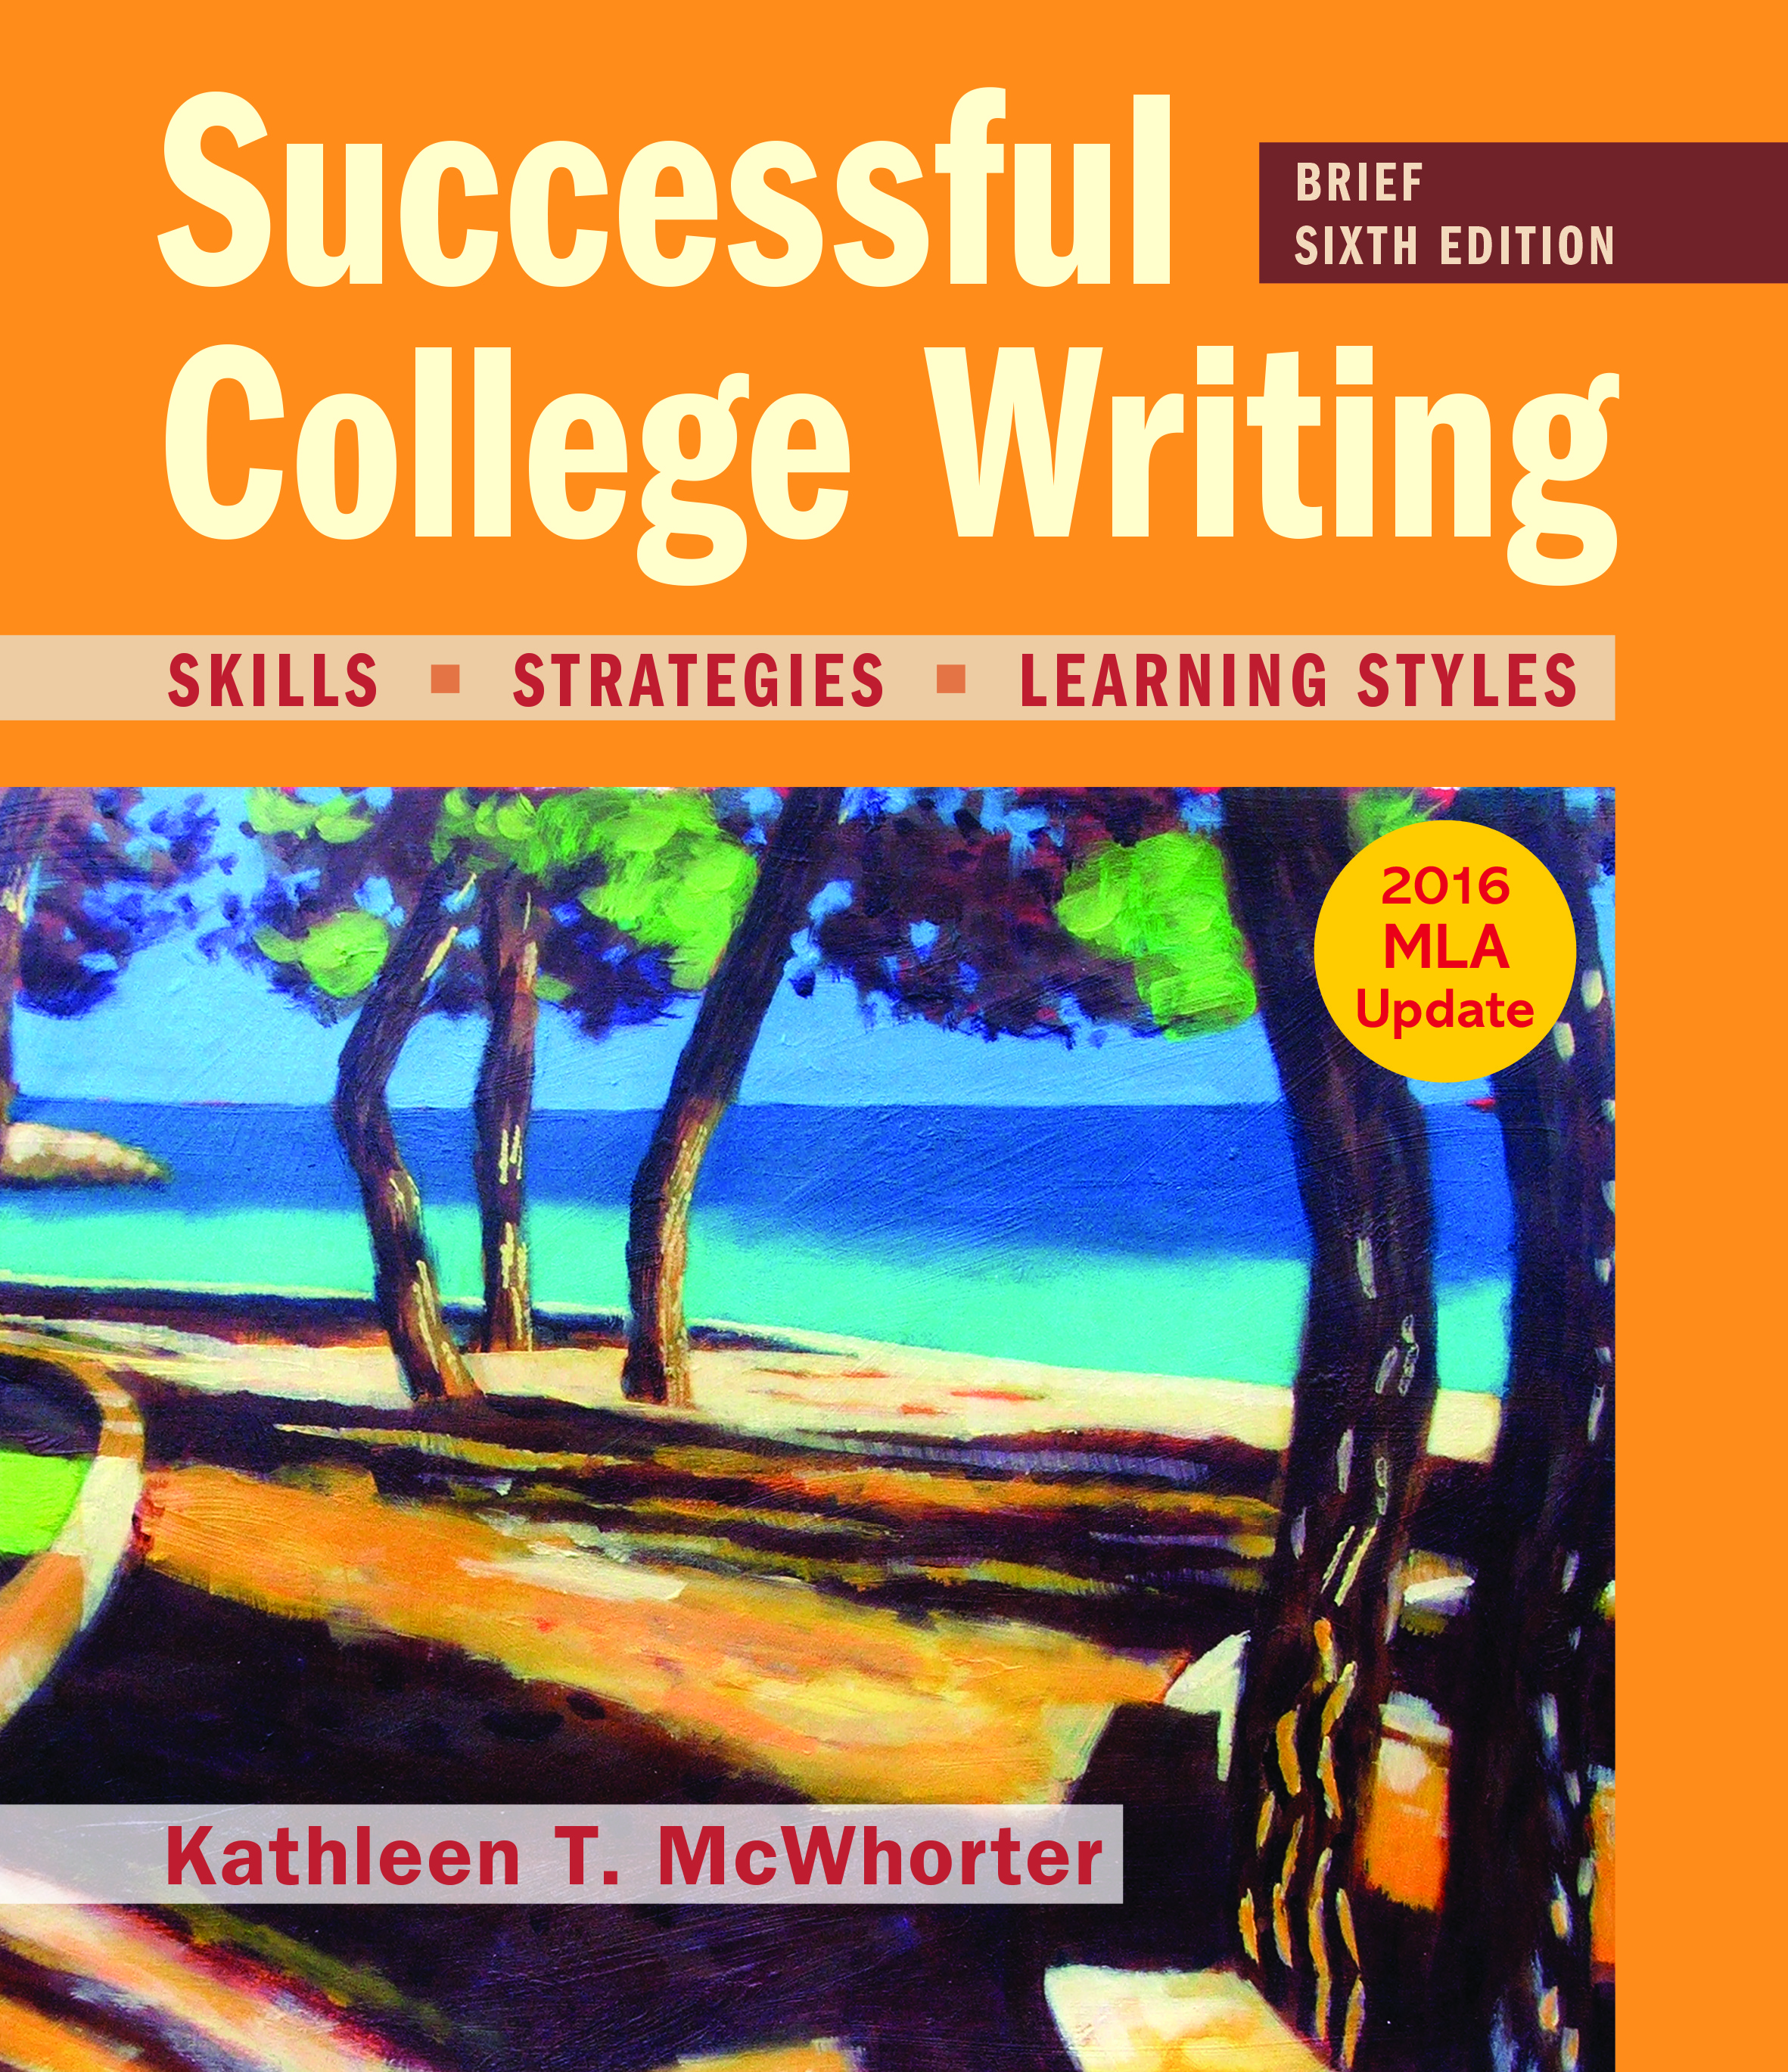 critical thinking reading and writing 7th edition ebook Course description: the course develops proficiency in college-level reading and writing through the application of the principles of rhetoric, argument, and critical thinking students will write.